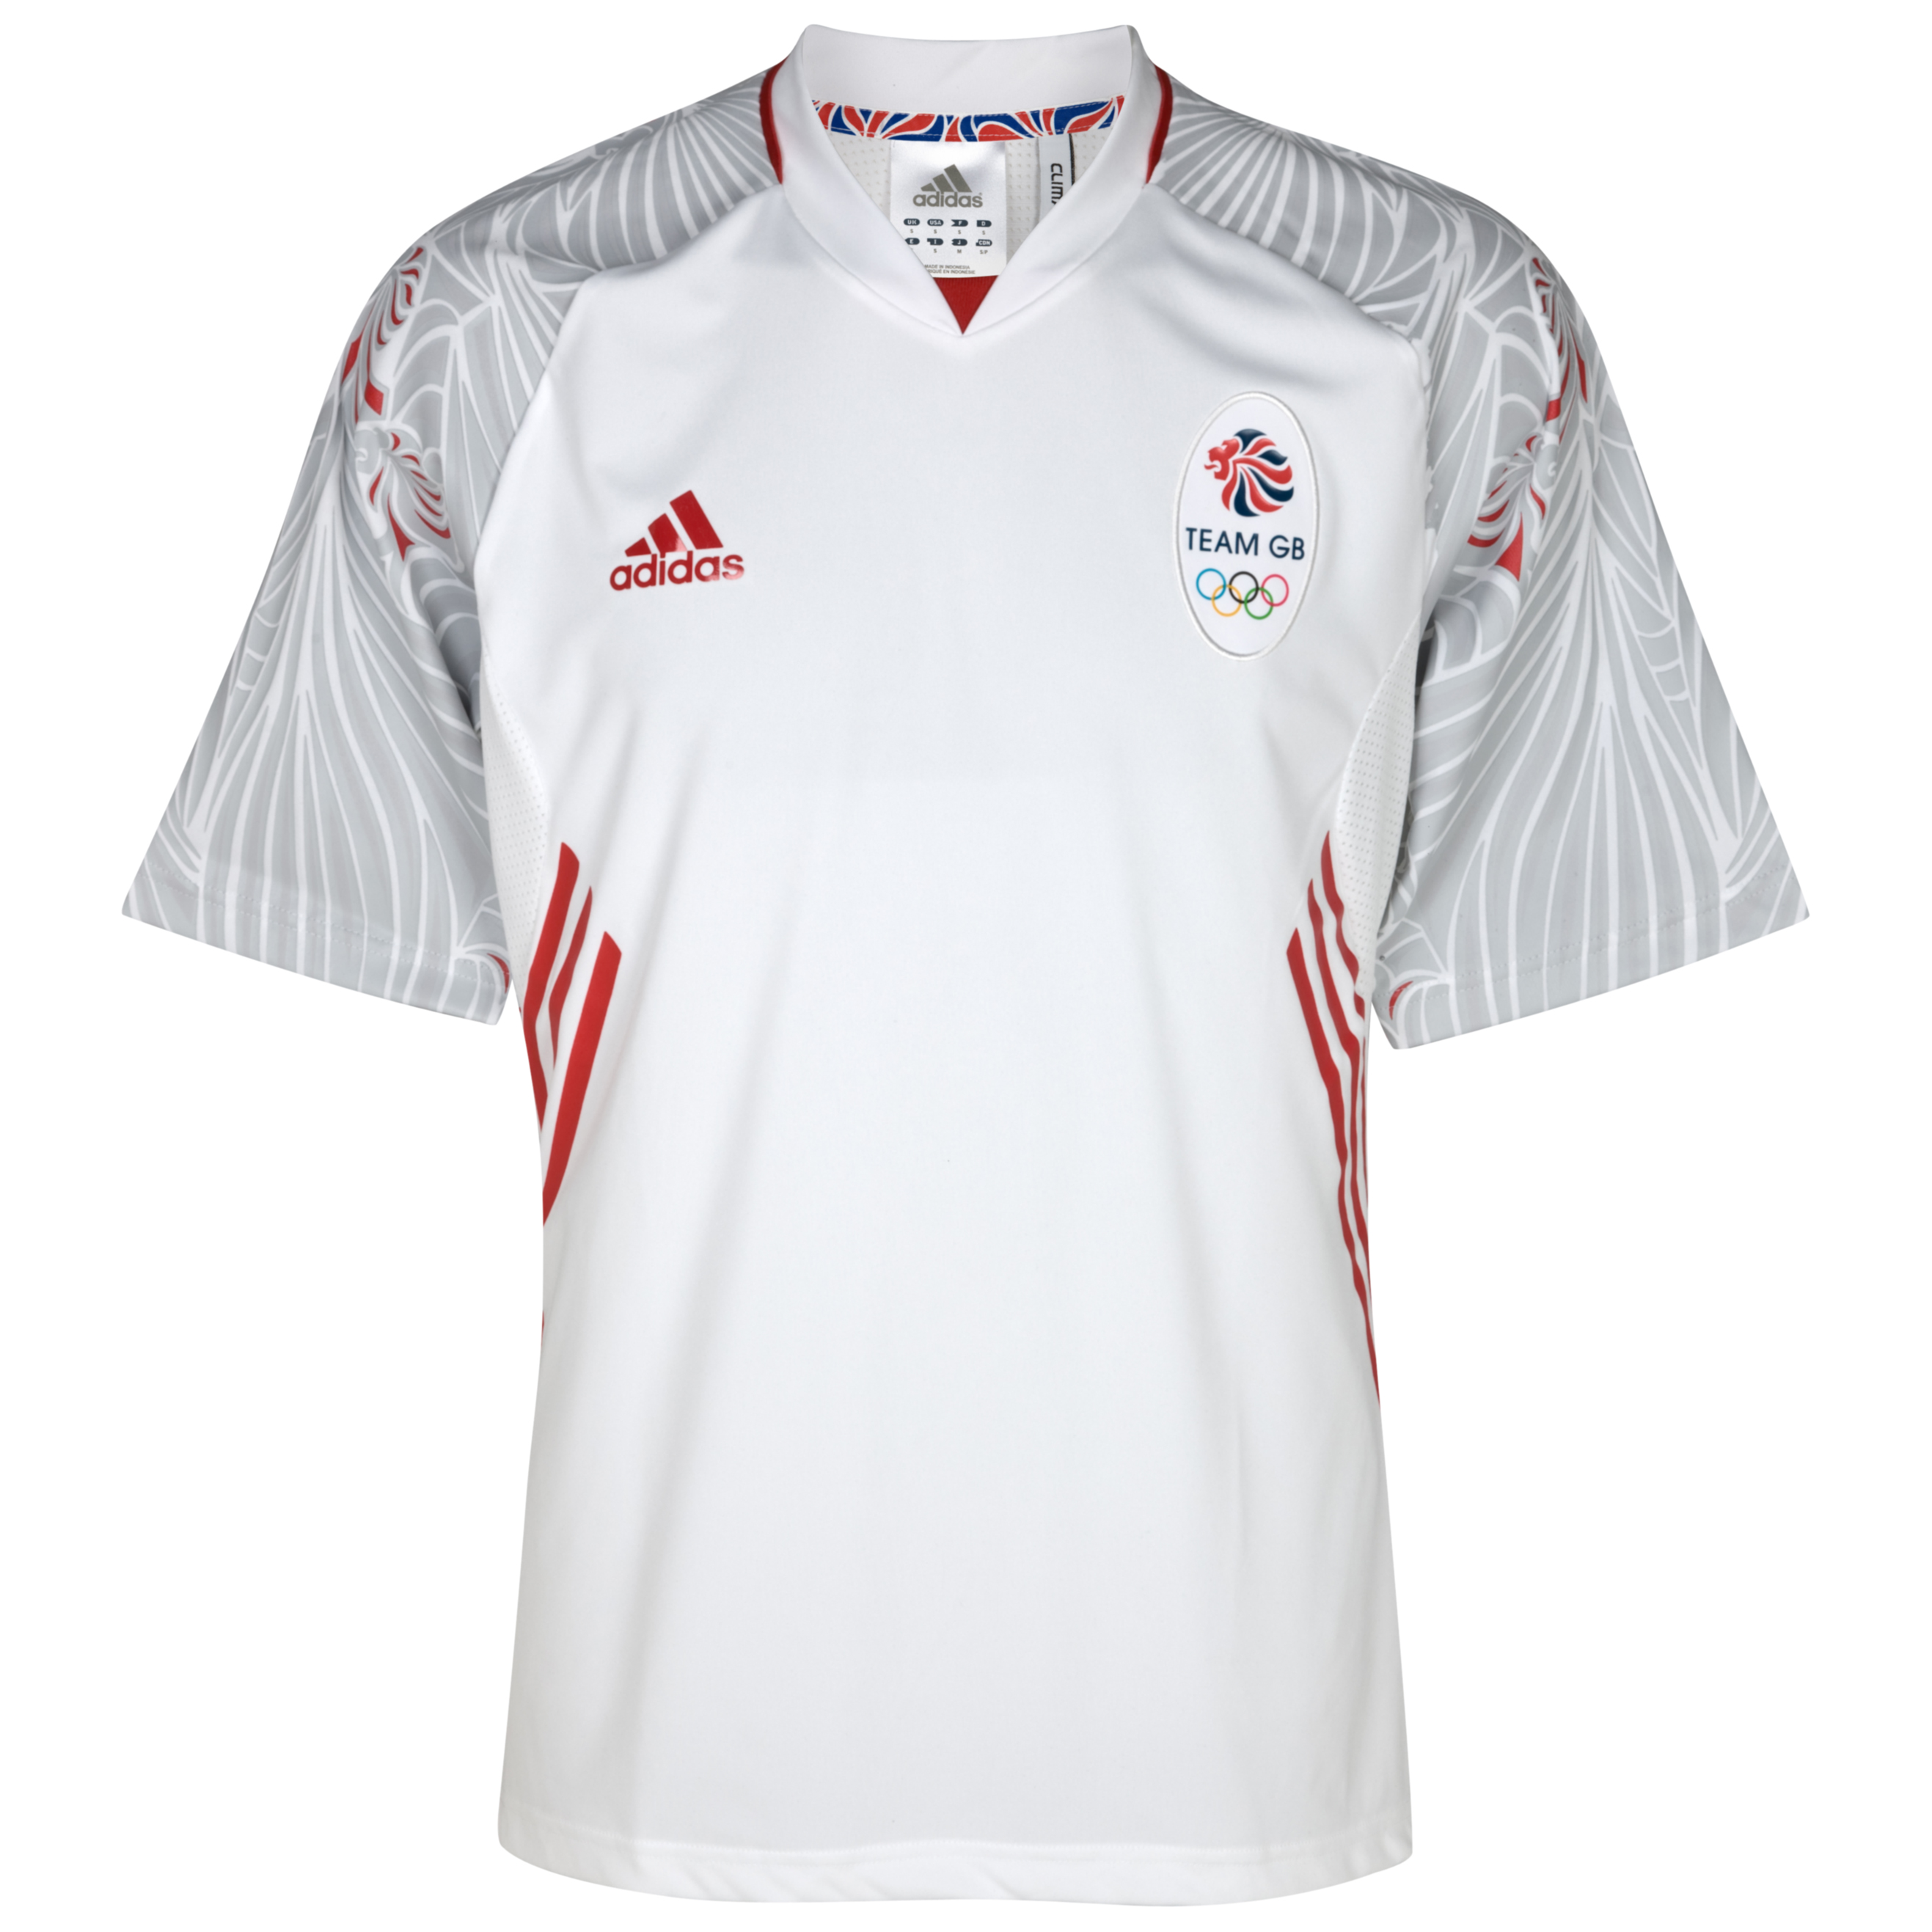 adidas Team GB Icon Jersey - White/Poppy